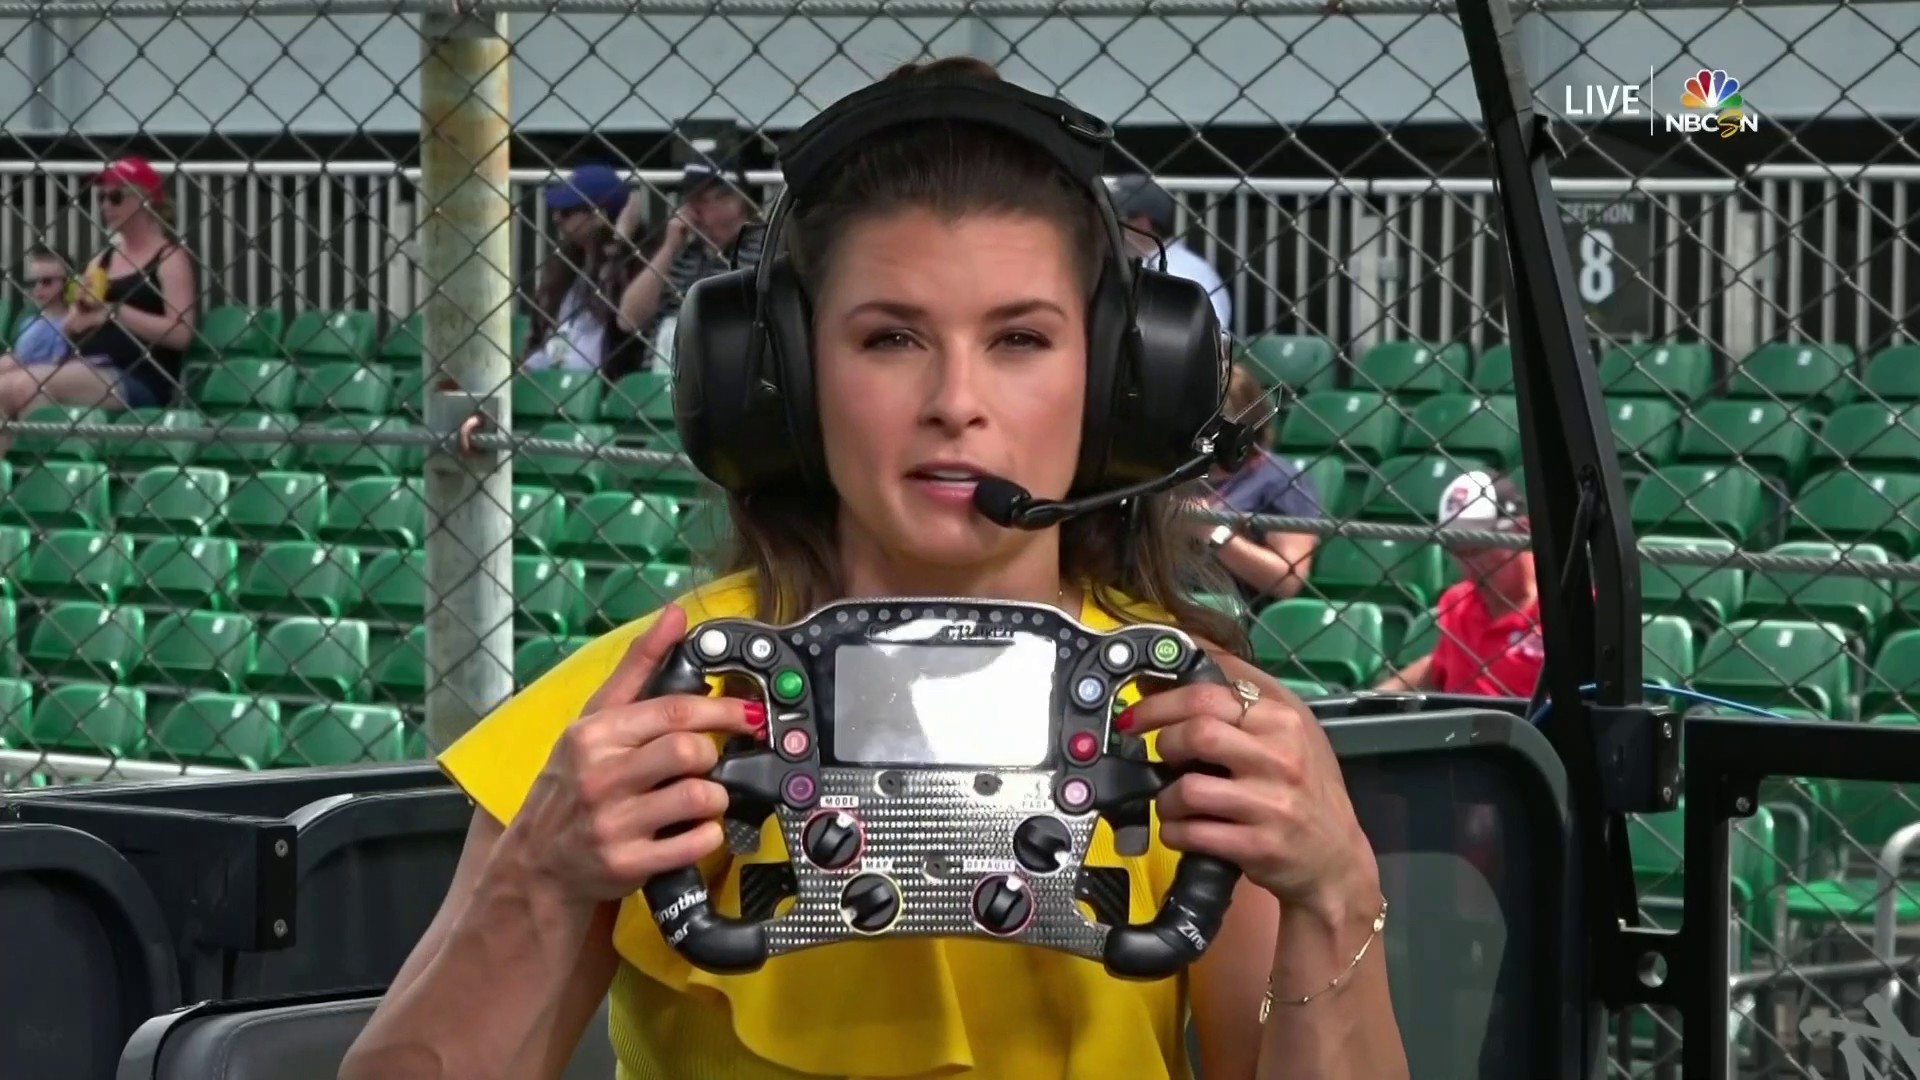 Danica Patrick explains complexities, changes to IndyCar steering wheel